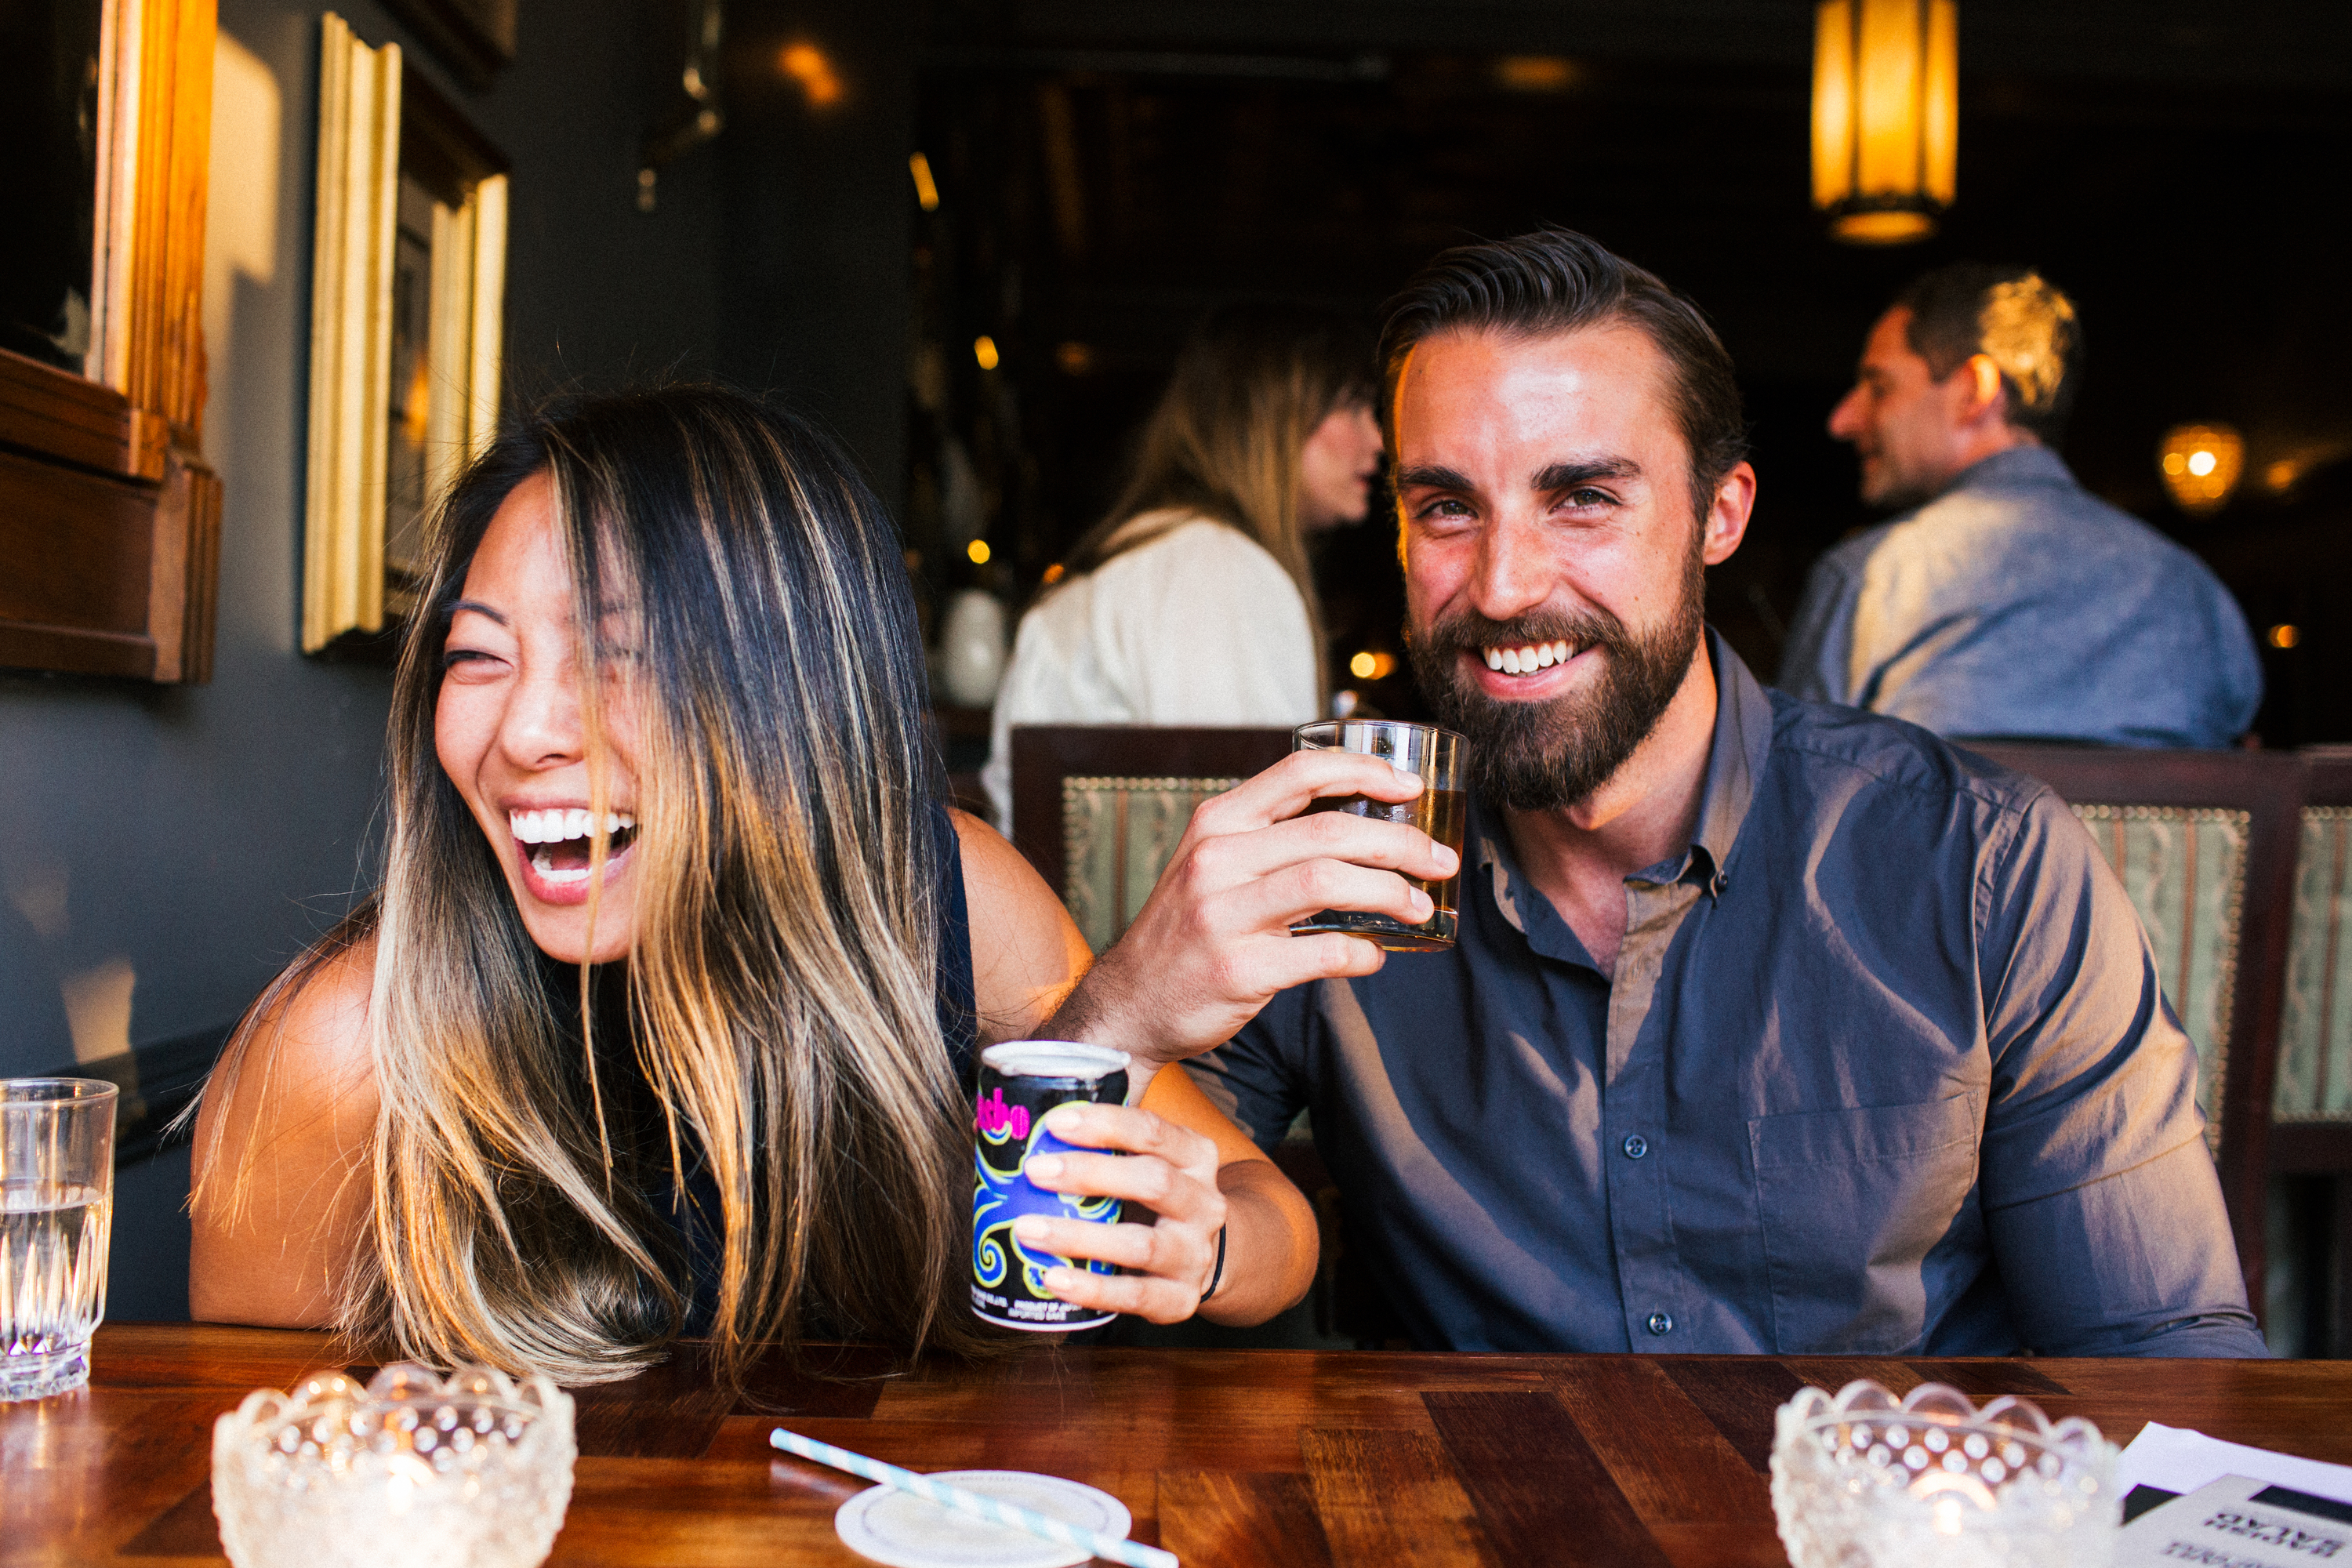 The best things to do on a first date in Chicago